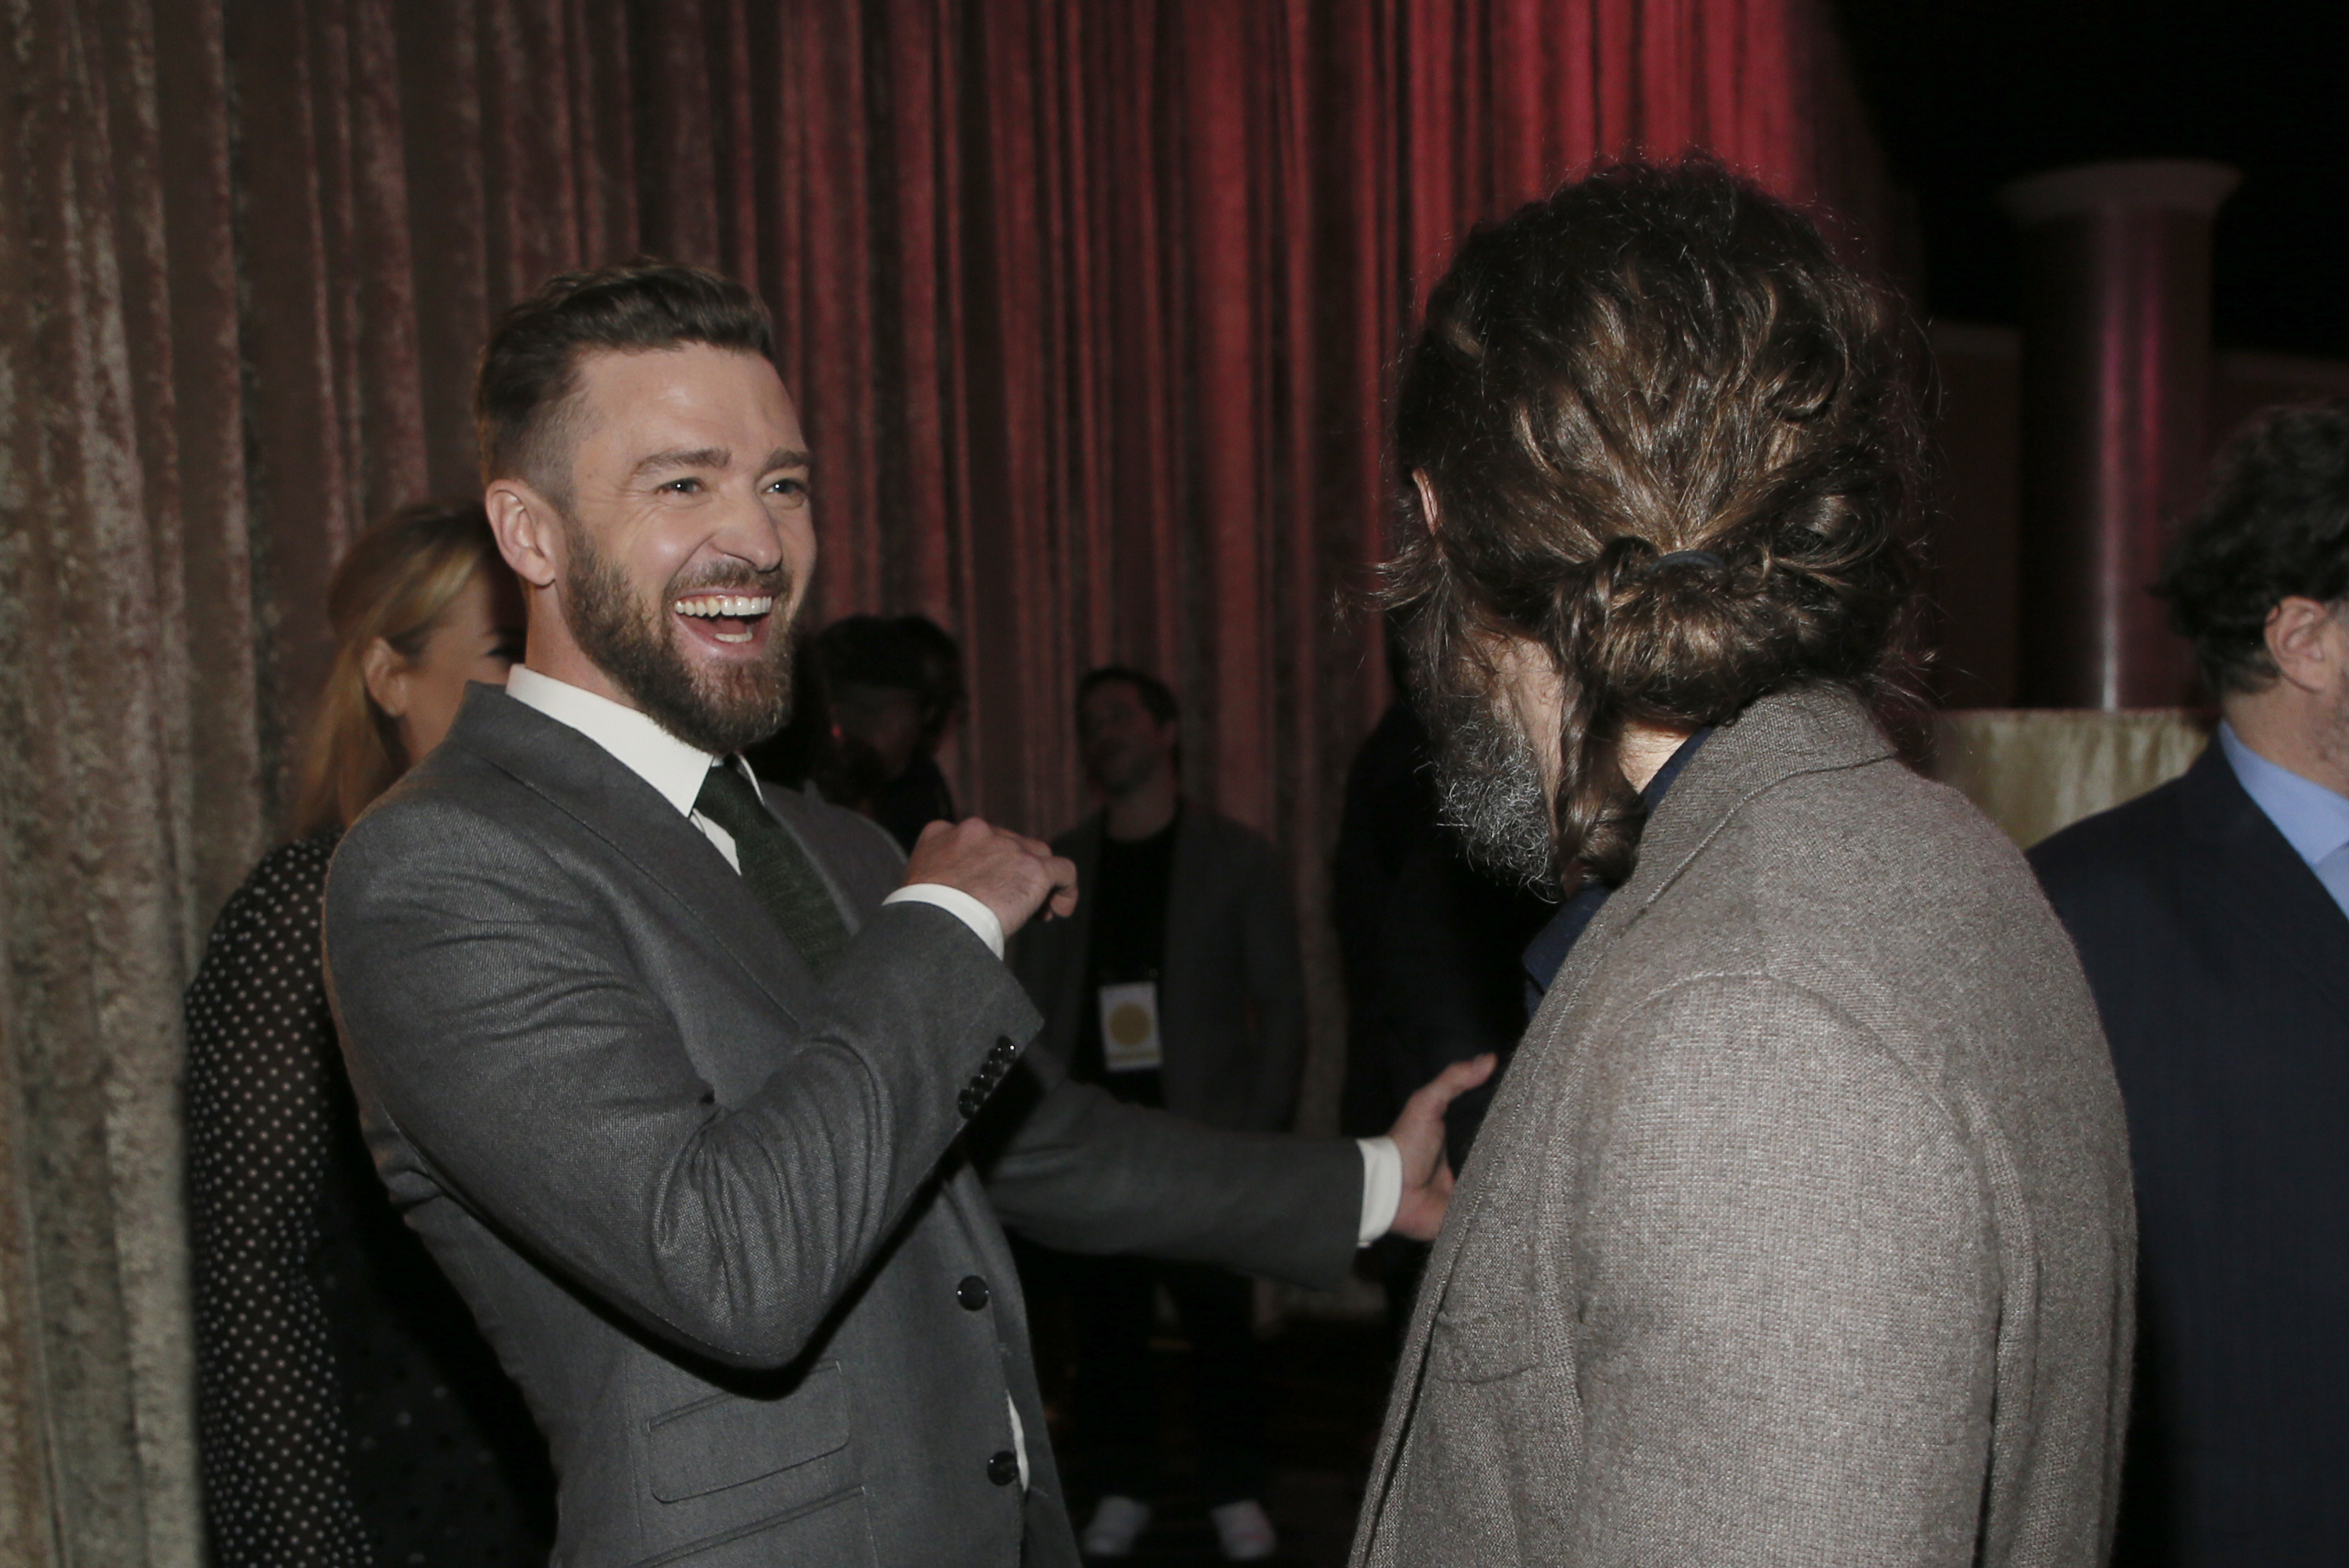 Justin Timberlake, left, and Casey Affleck attend the 89th Academy Awards Nominees Luncheon at The Beverly Hilton Hotel on Monday, Feb. 6, 2017, in Beverly Hills, Calif. (Photo by Danny Moloshok/Invision/AP)